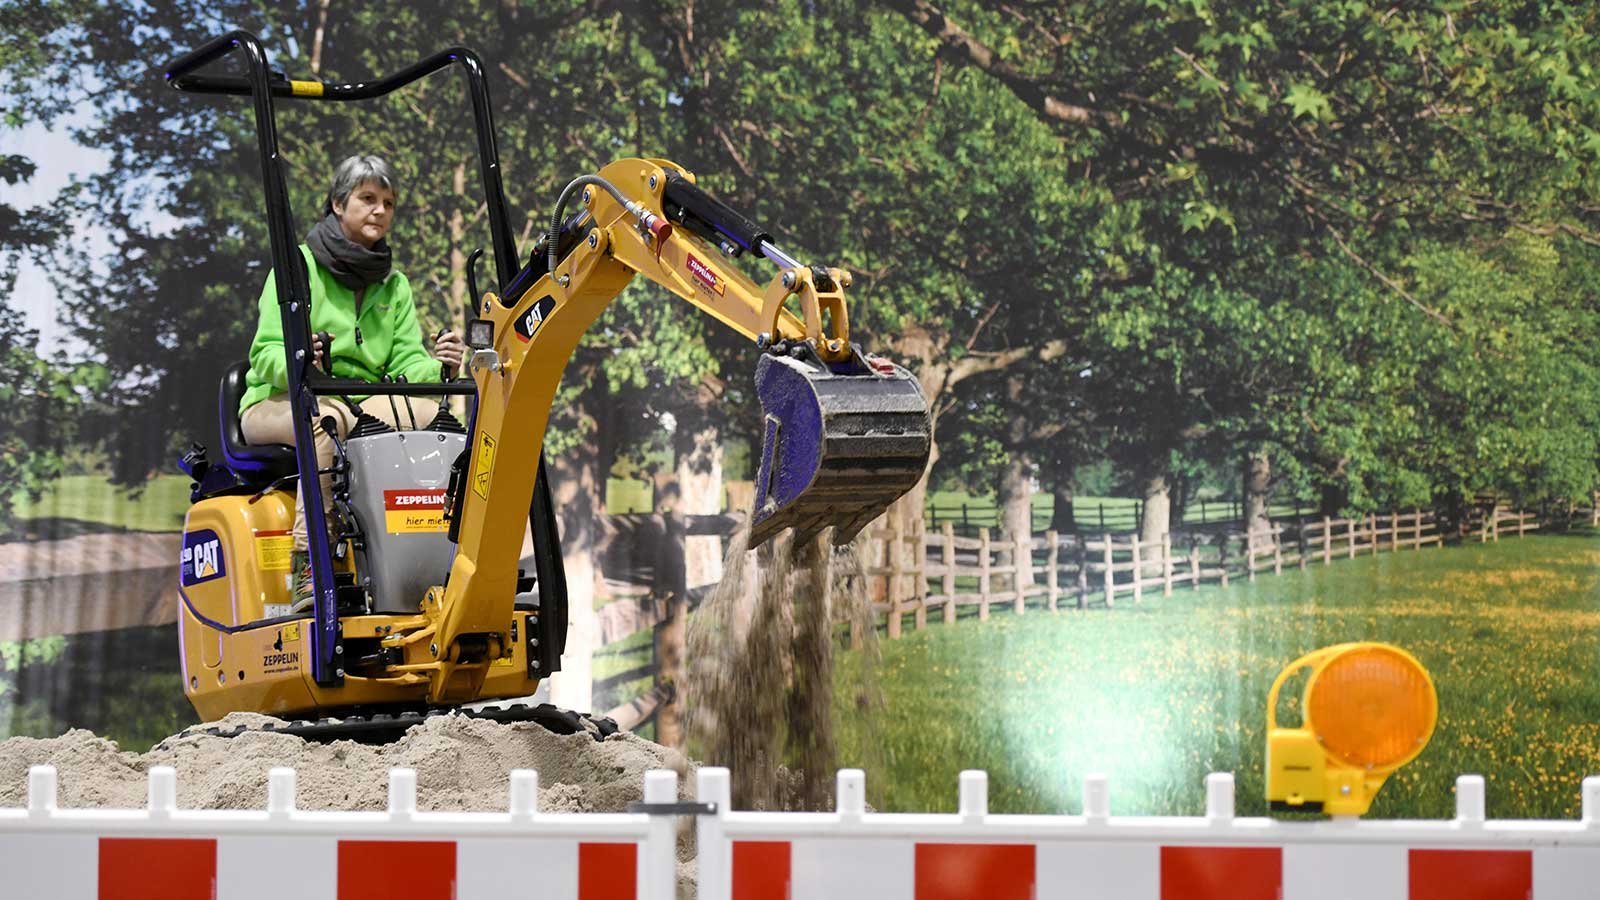 A female visitor on an excavator at the Messer home2 trade show in the Hamburg exhibition halls